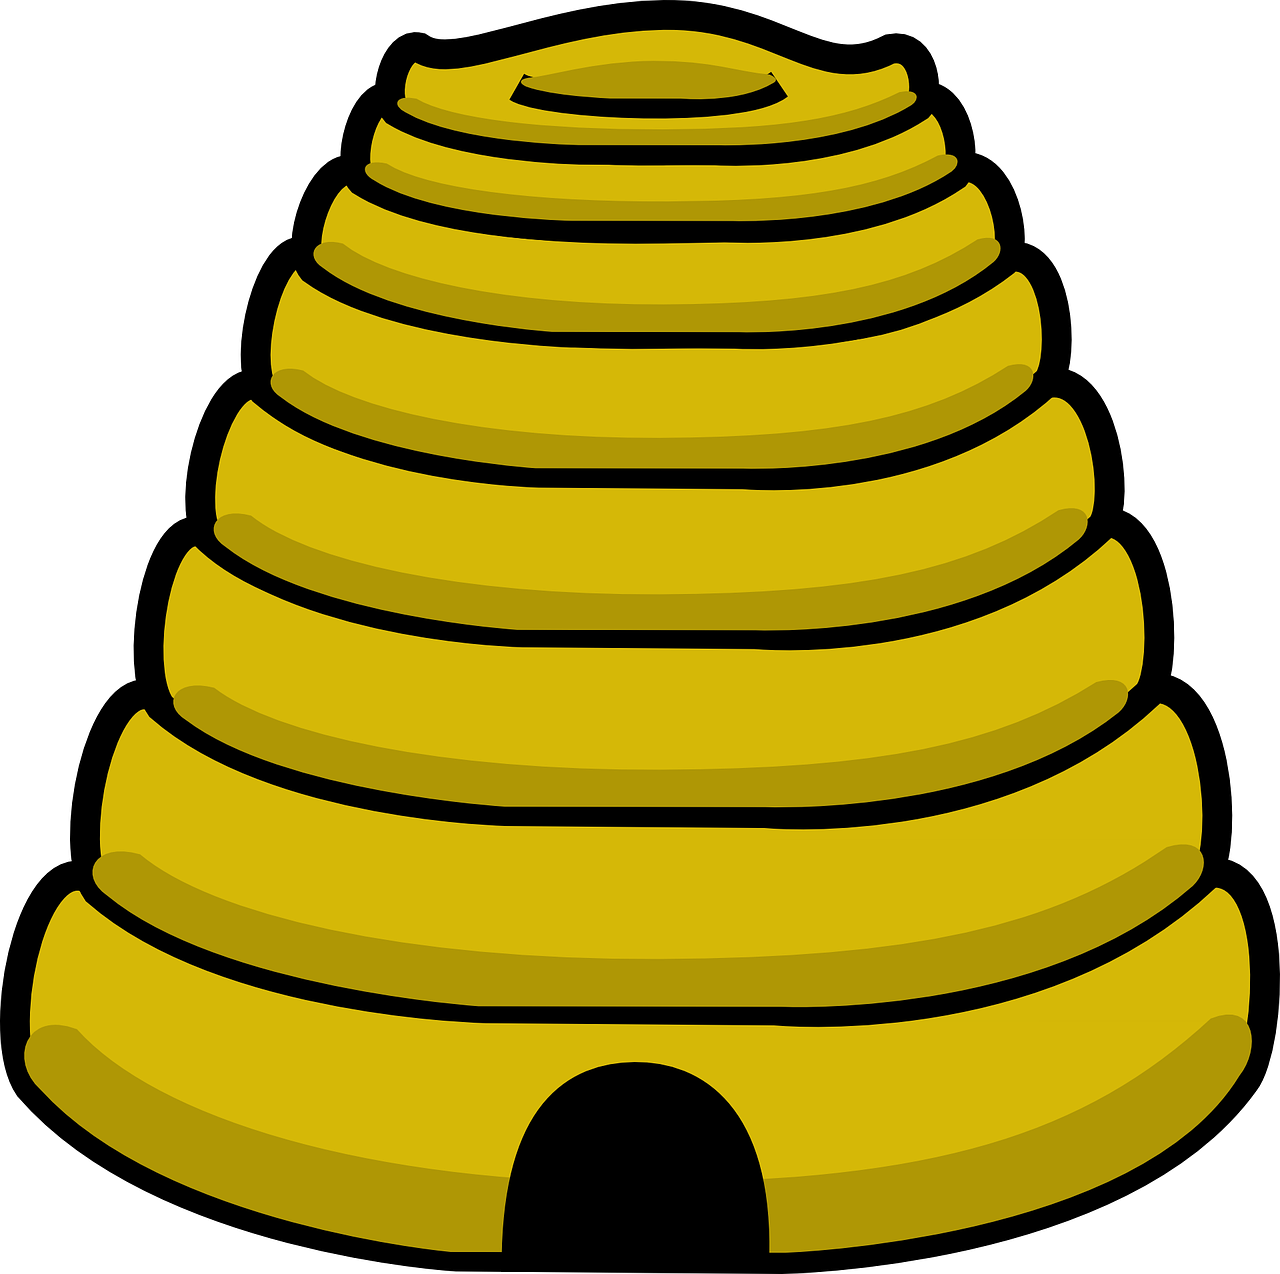 beehive yellow cone free photo